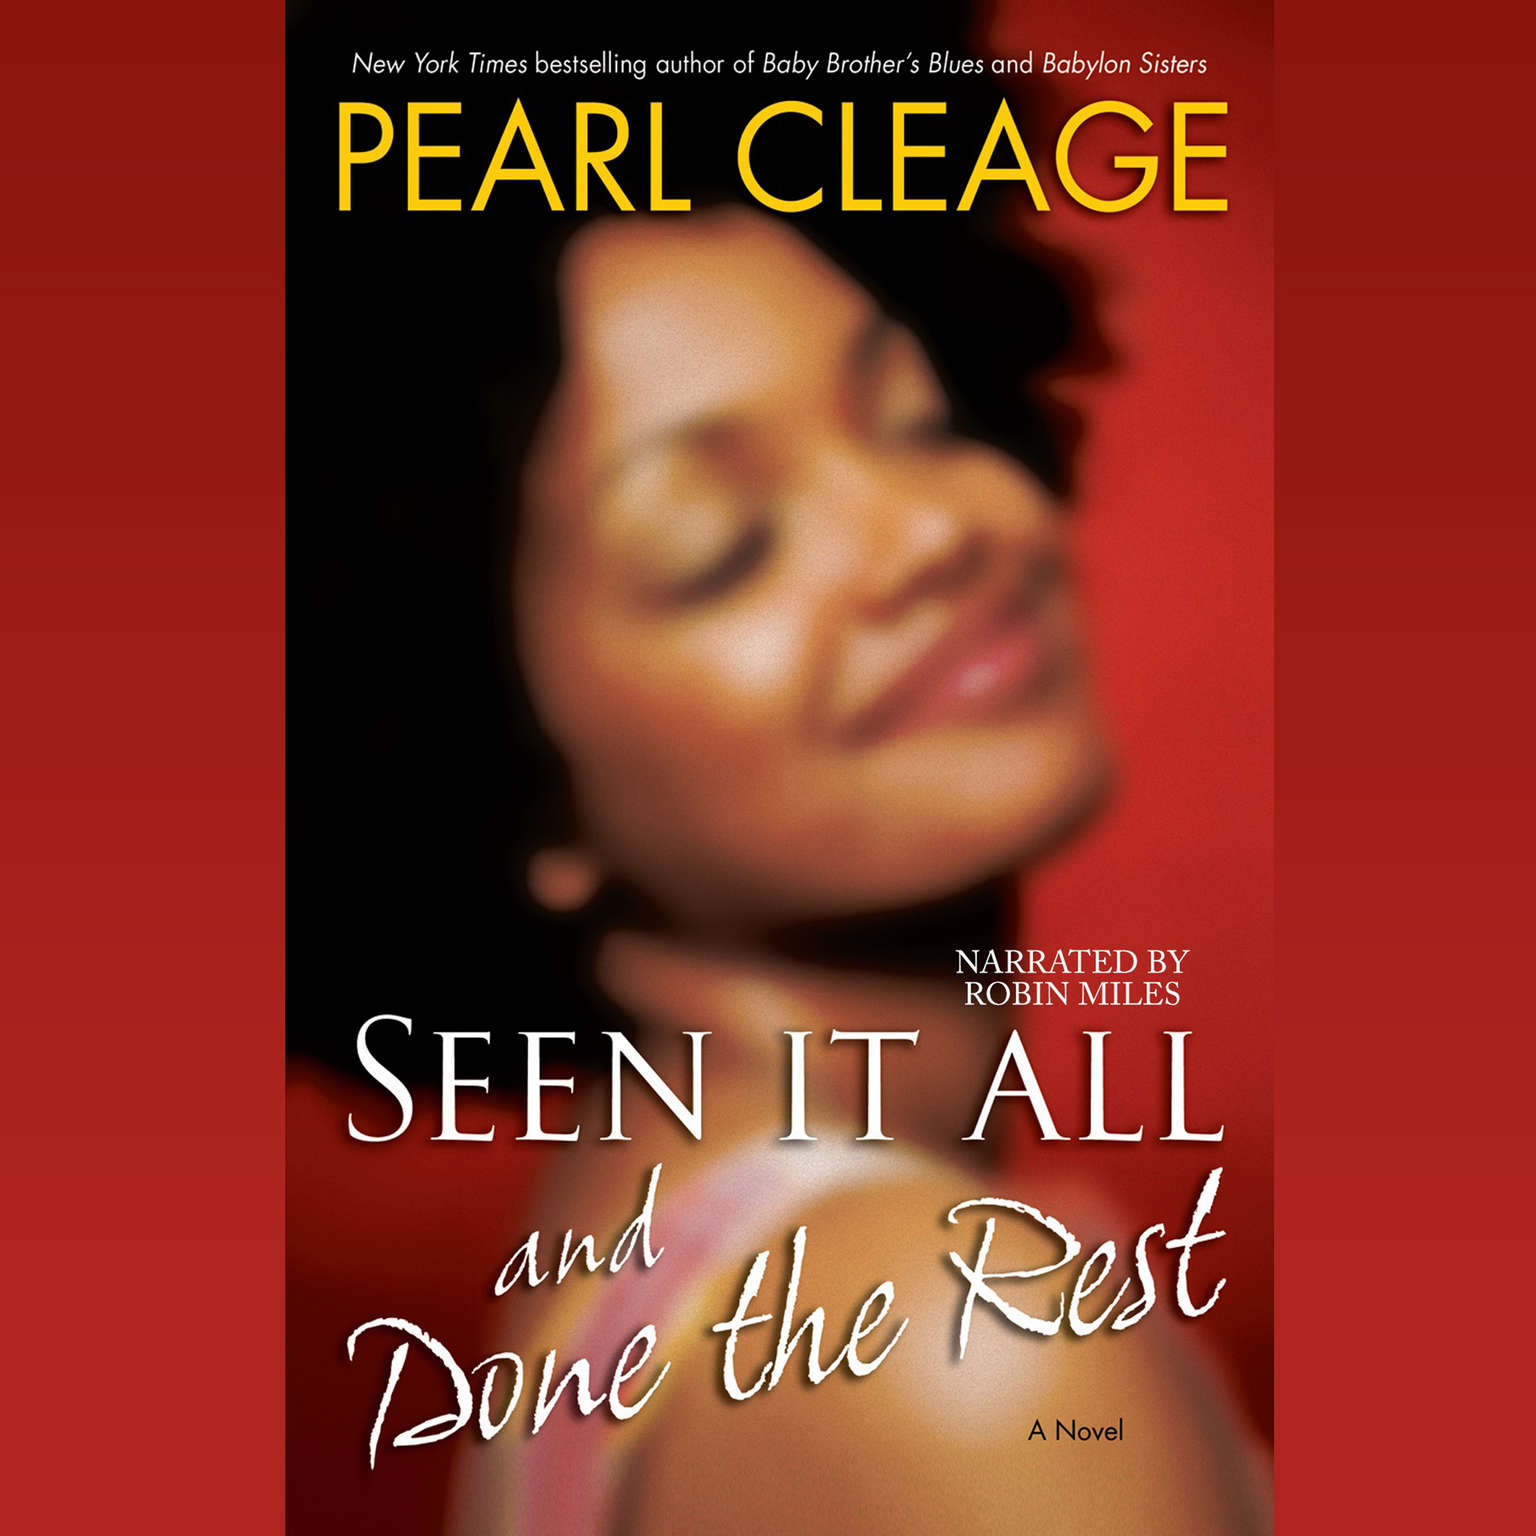 Printable Seen it All and Done the Rest Audiobook Cover Art